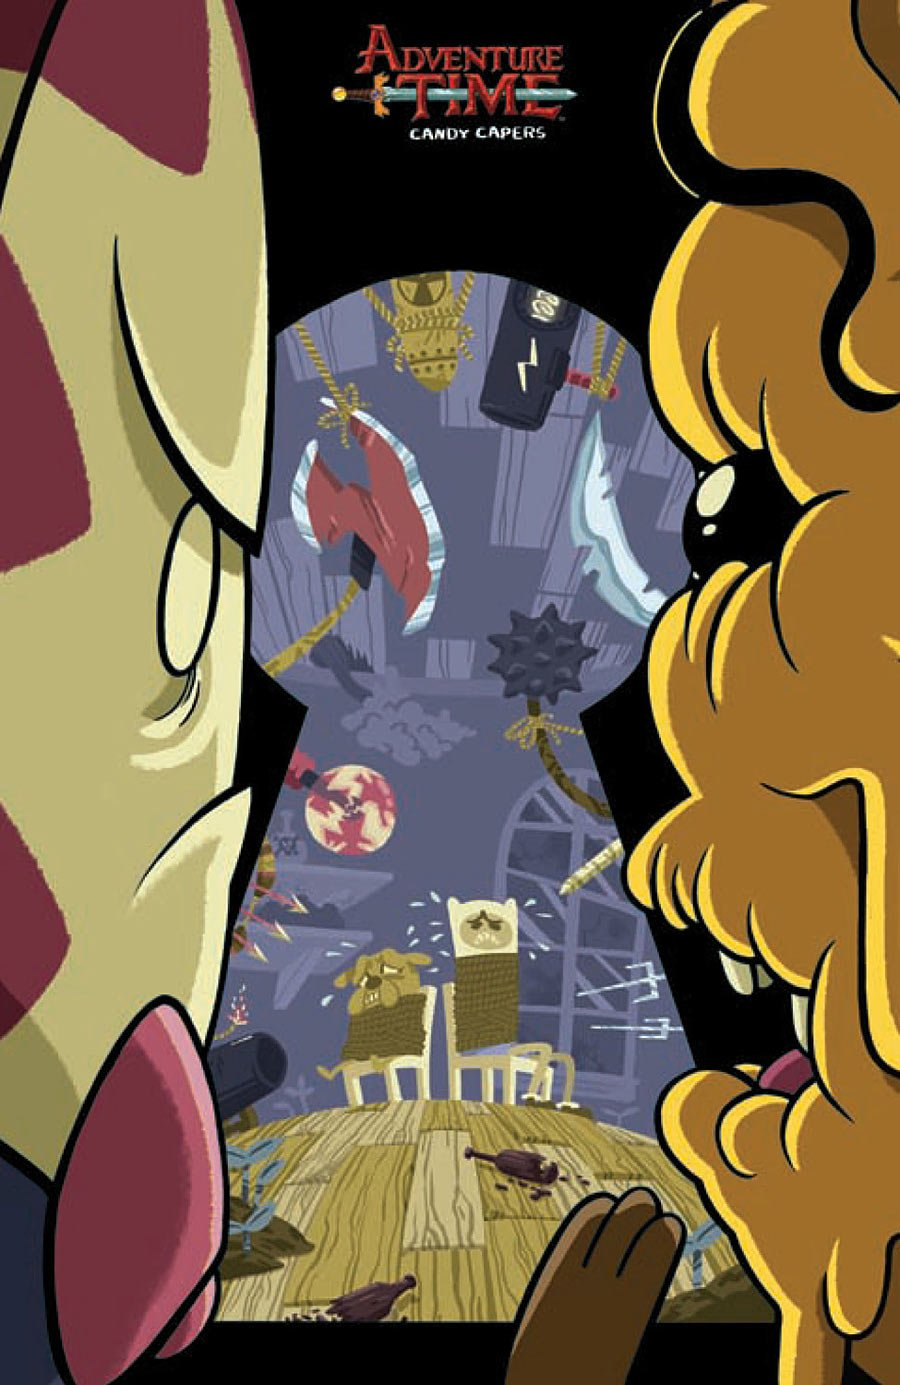 Download Adventure Time Candy Capers #5 1:15 Variant pdf